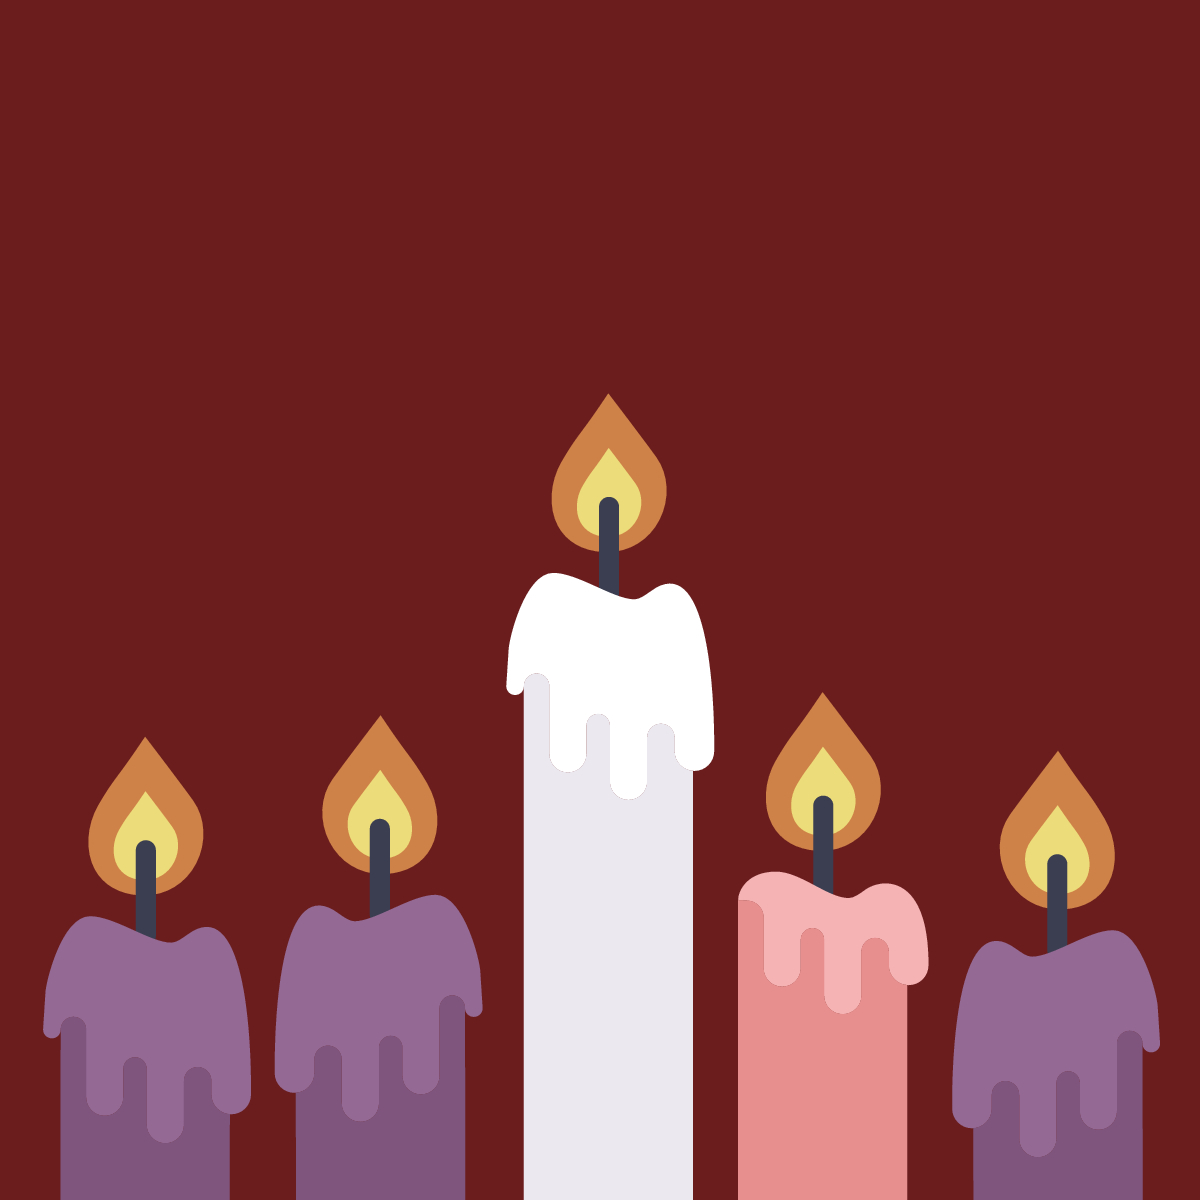 drawing of 5 lit candles